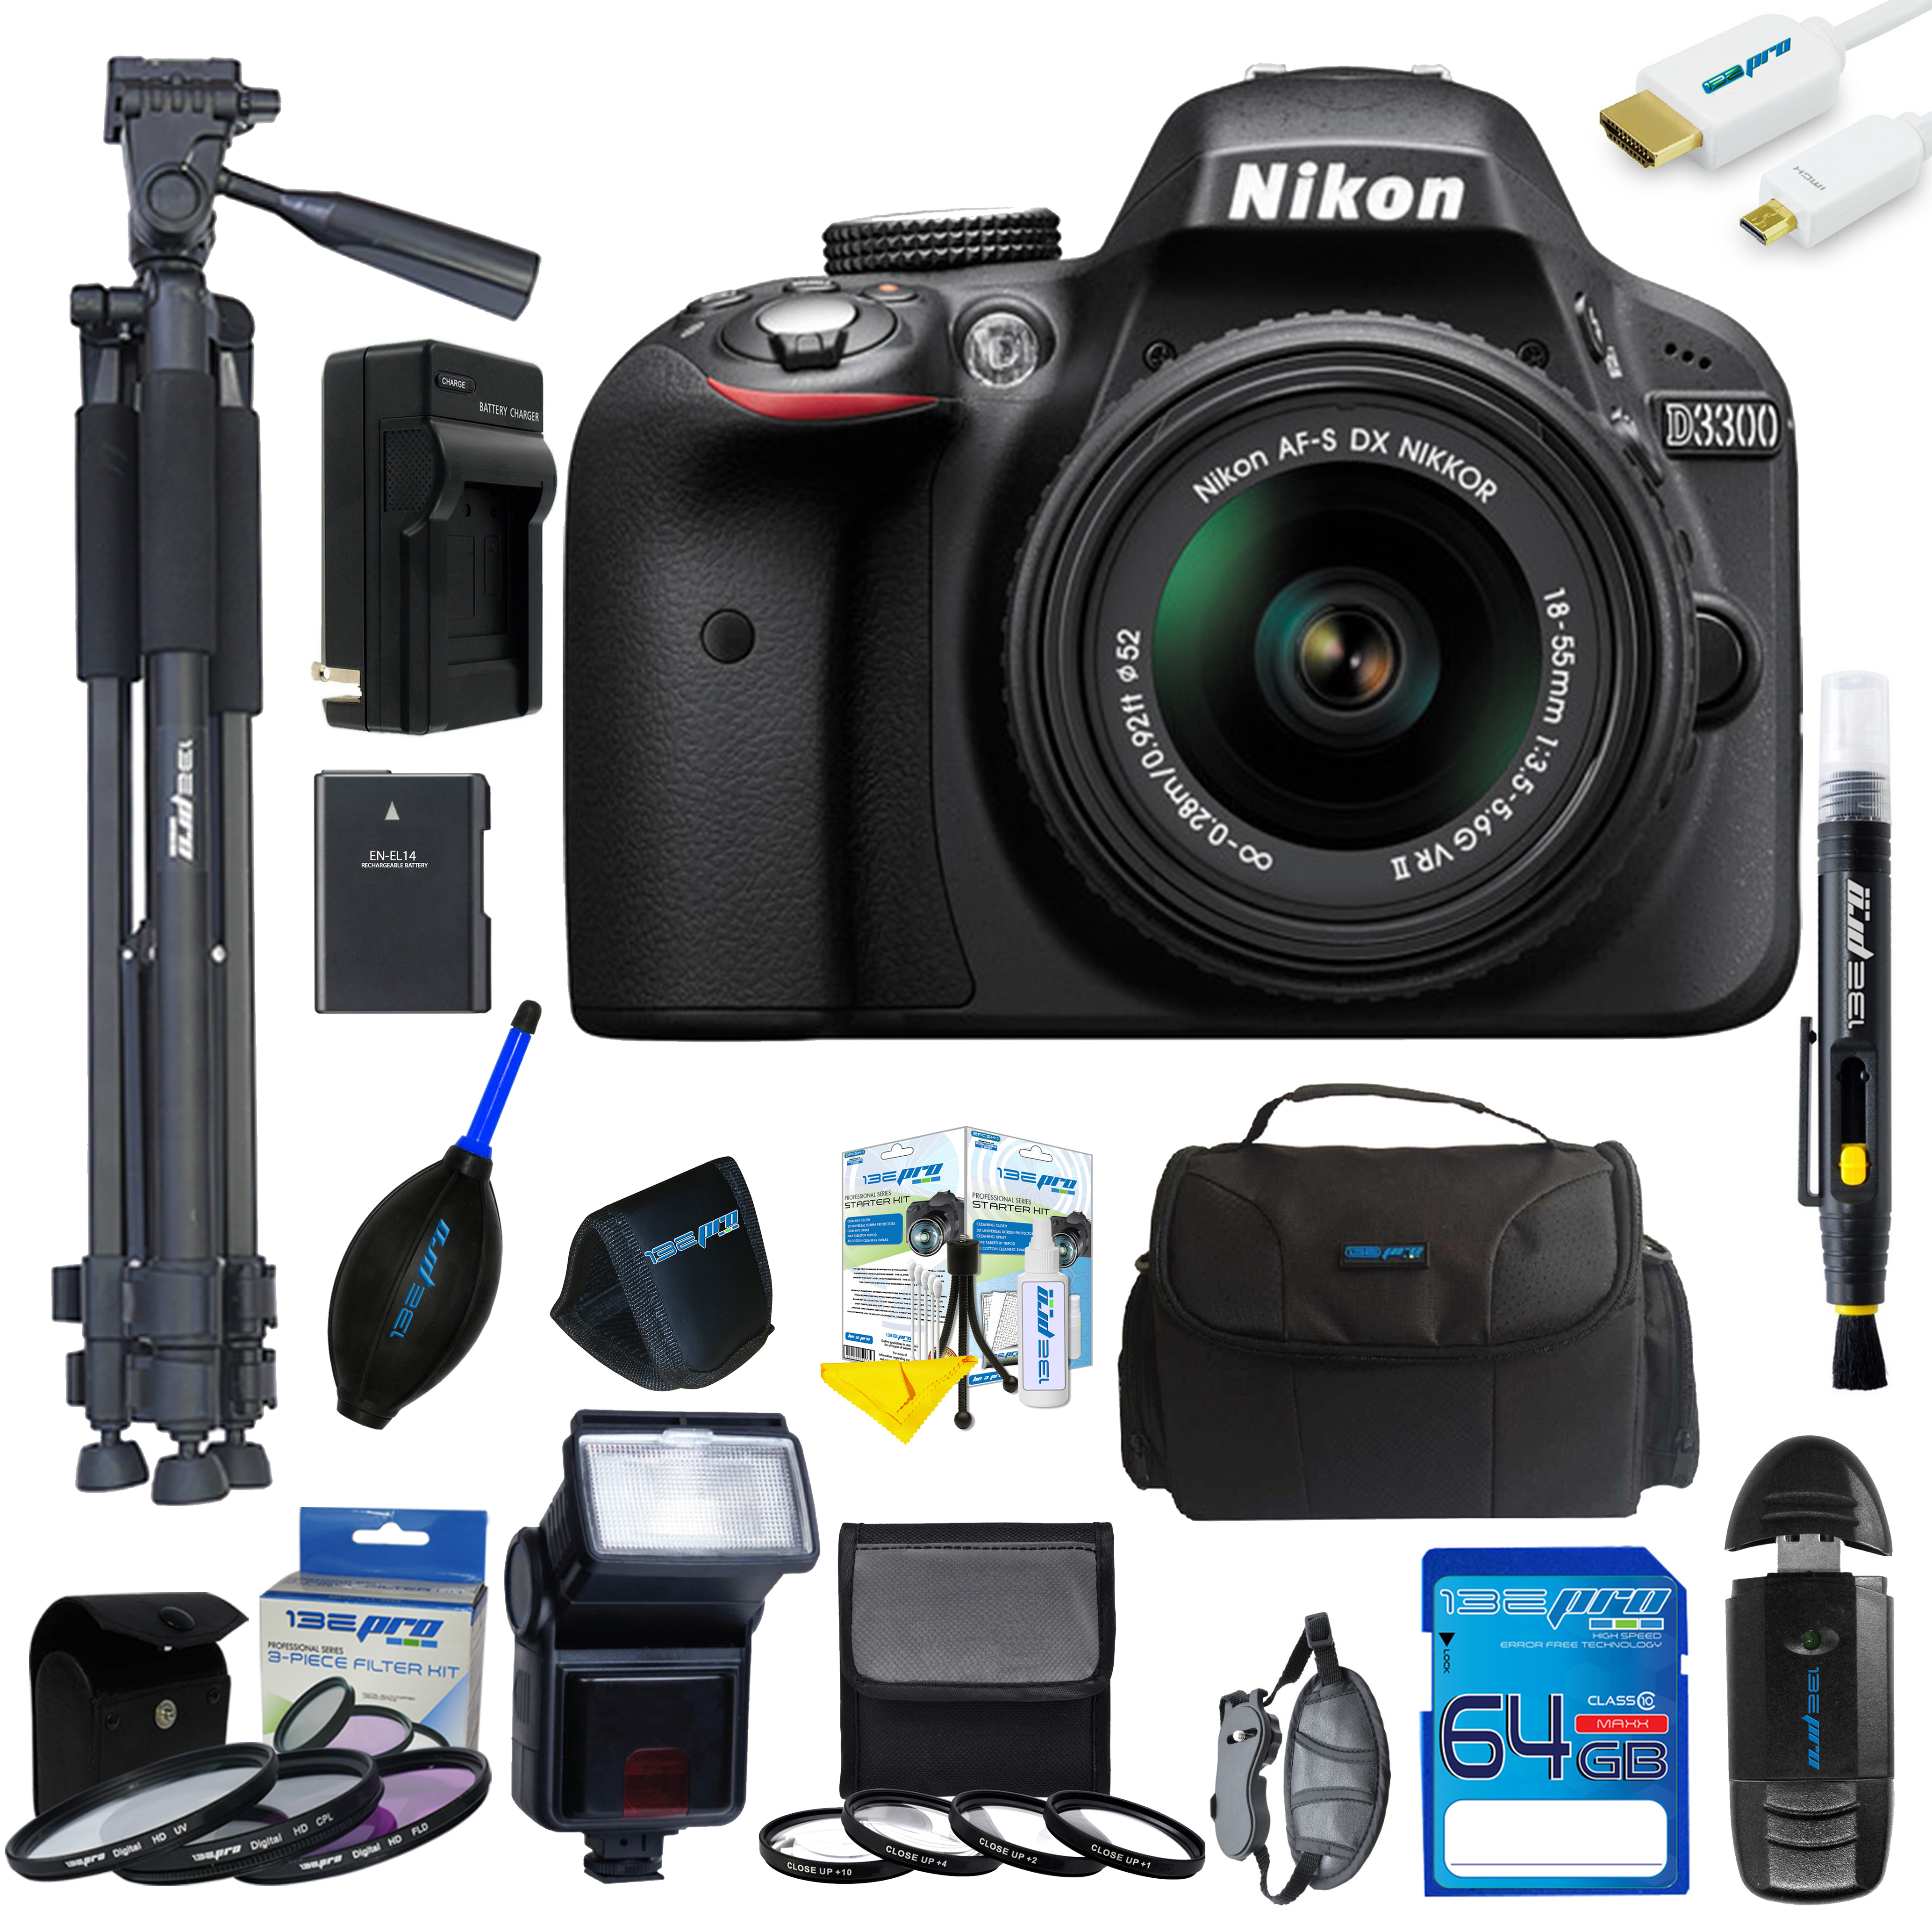 Nikon D3300 DSLR Camera with 18-55mm Lens + Pixi Pro Kit